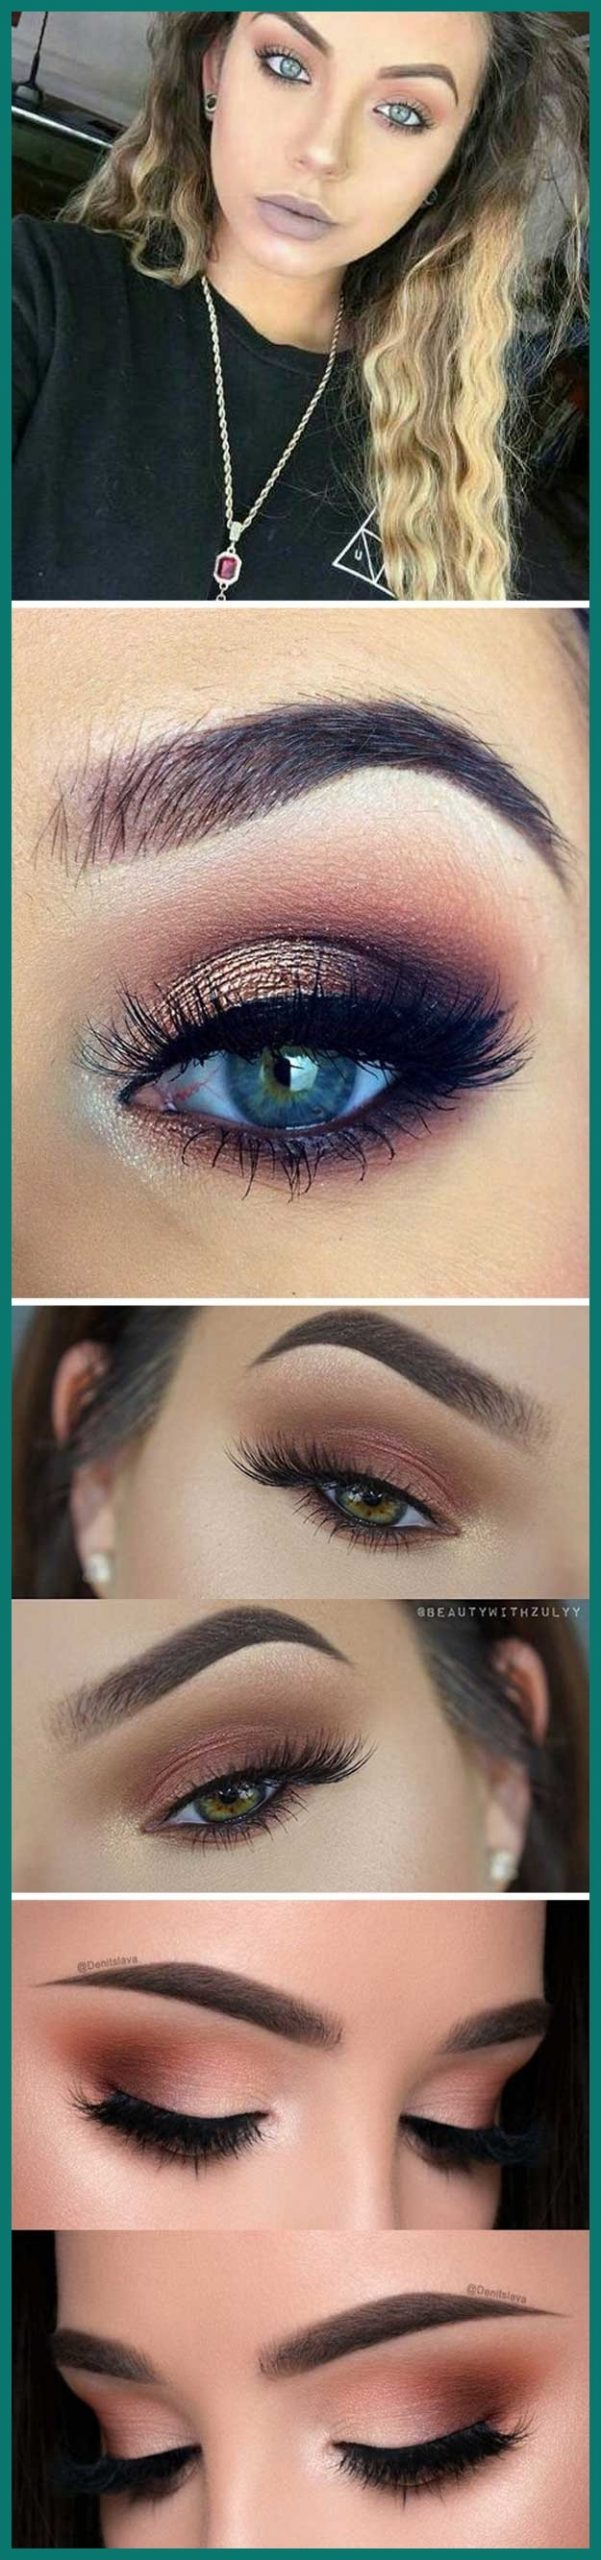 Best Eyeshadow Colors For Blue Eyes And Brown Hair 534226 throughout Makeup Tips For Blue Eyes And Brown Hair